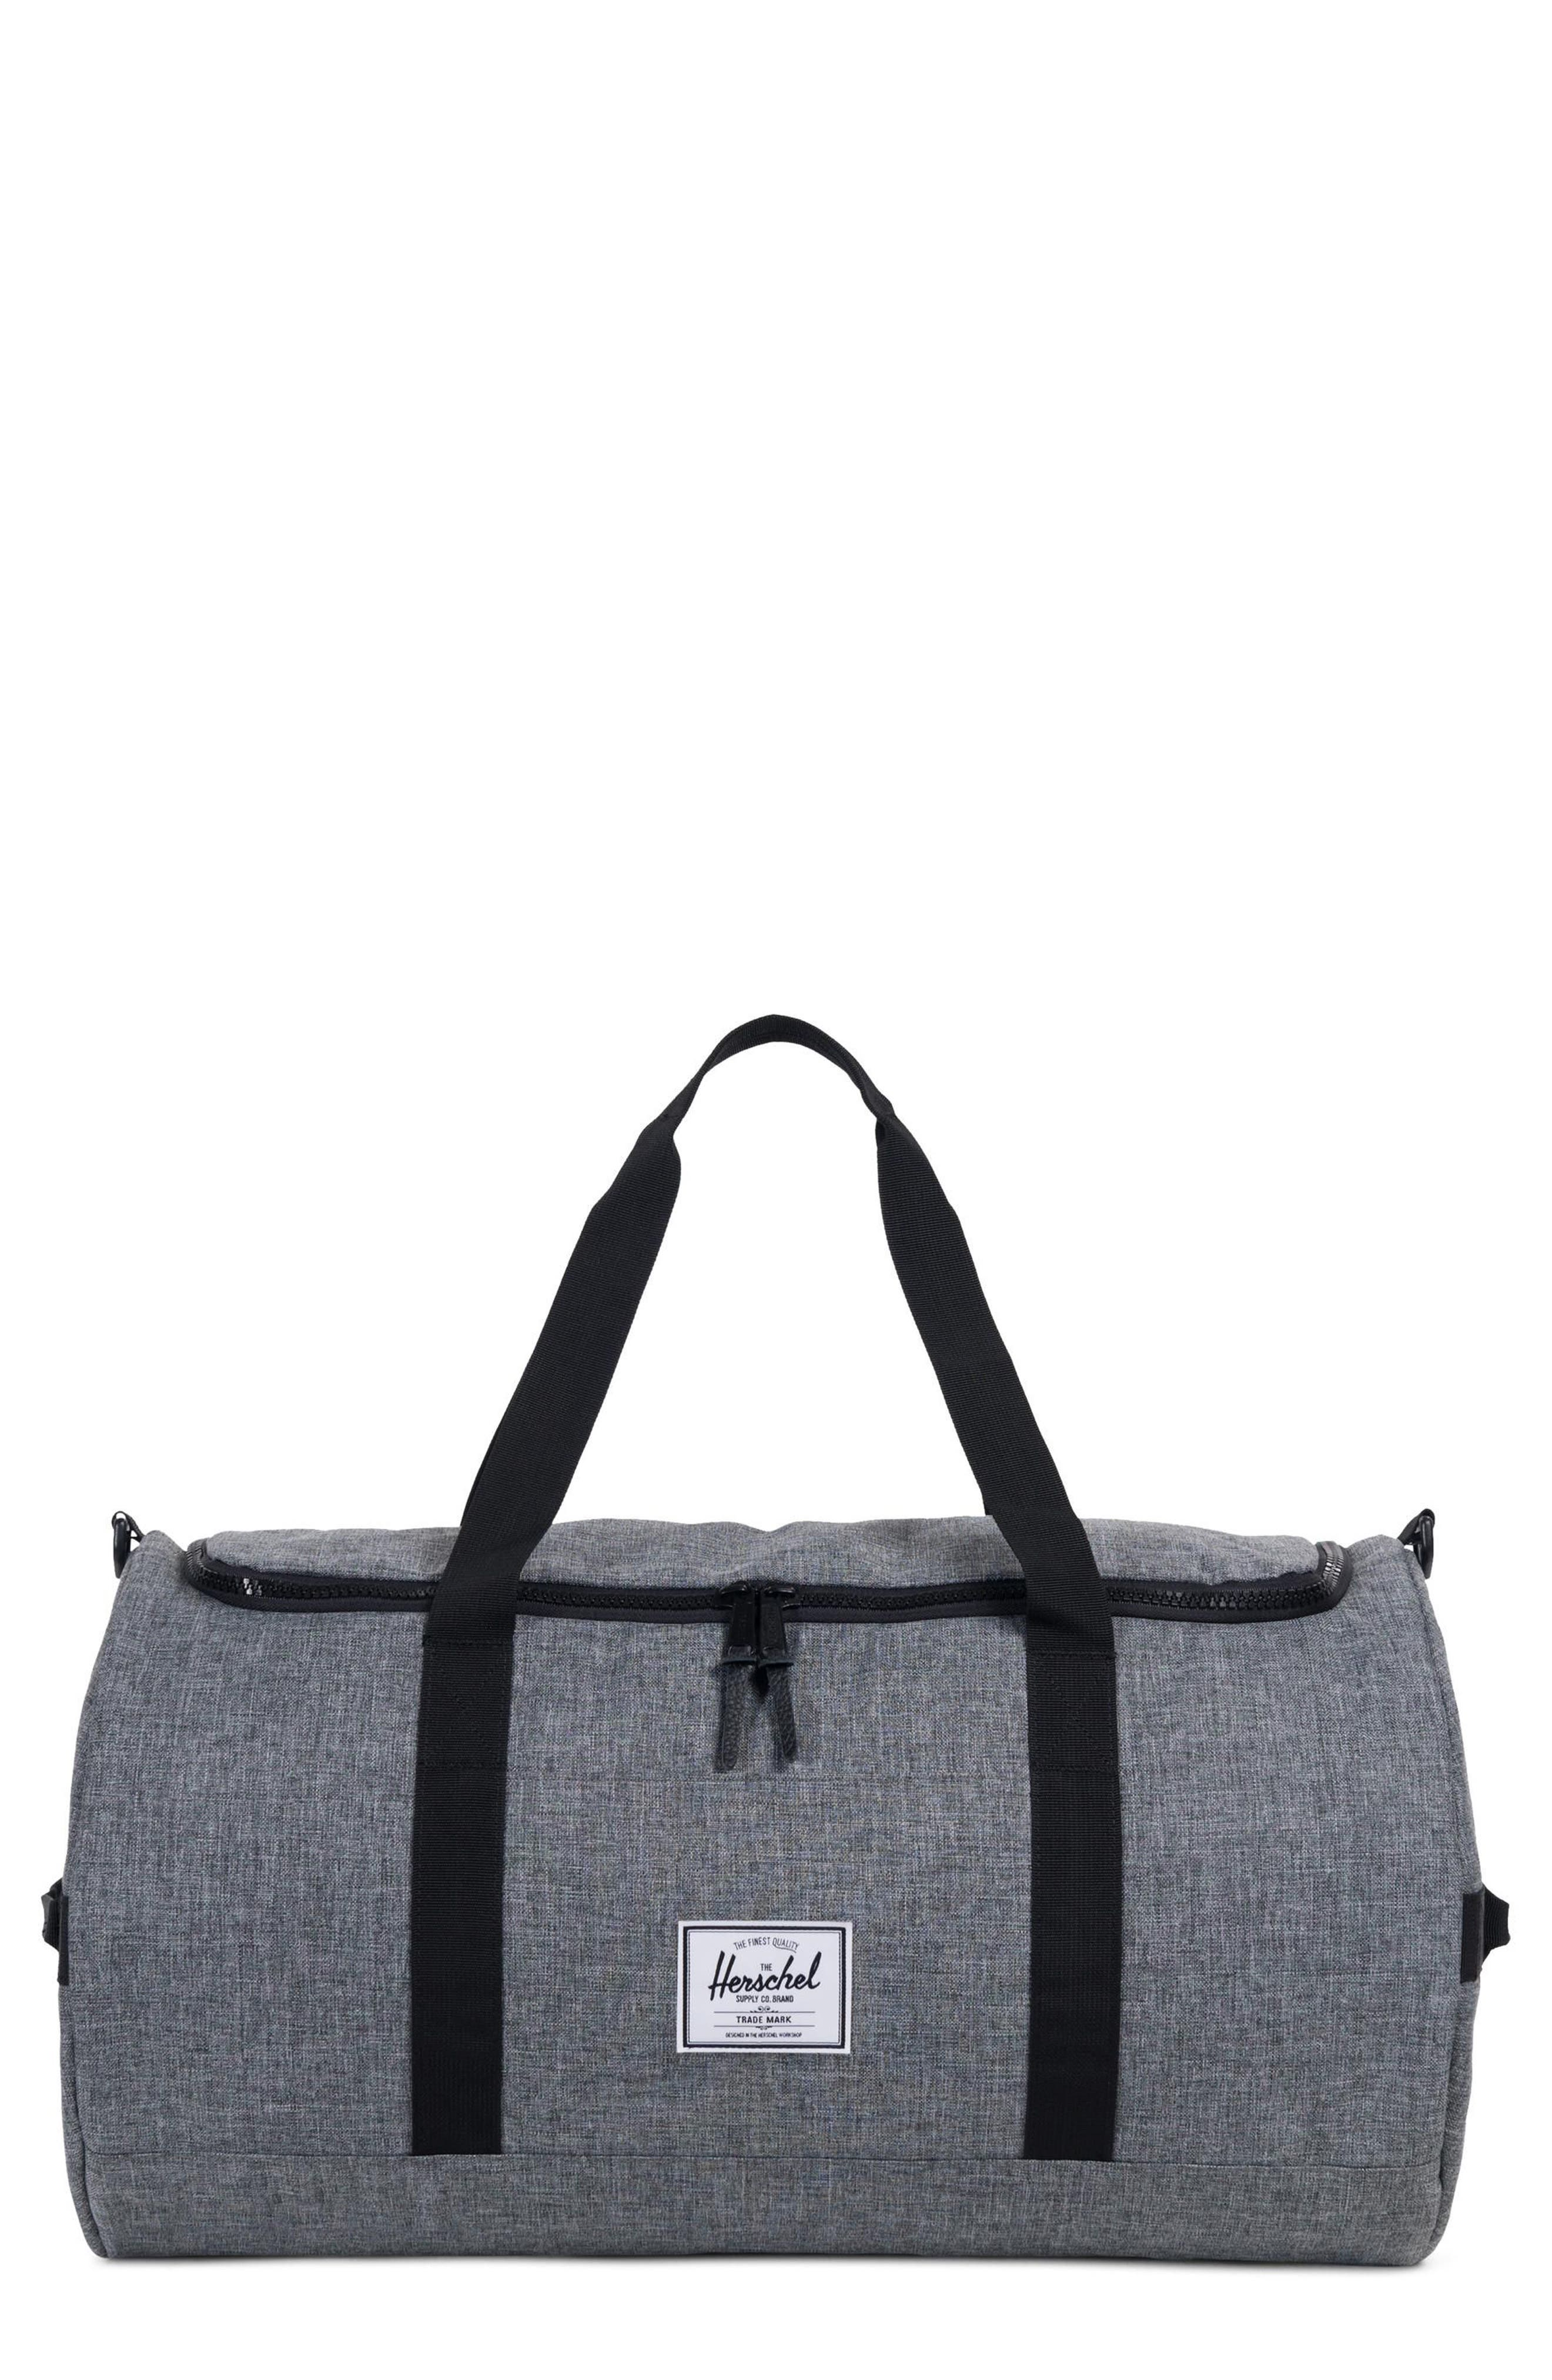 Sutton Duffel Bag,                             Main thumbnail 1, color,                             RAVEN CROSSHATCH